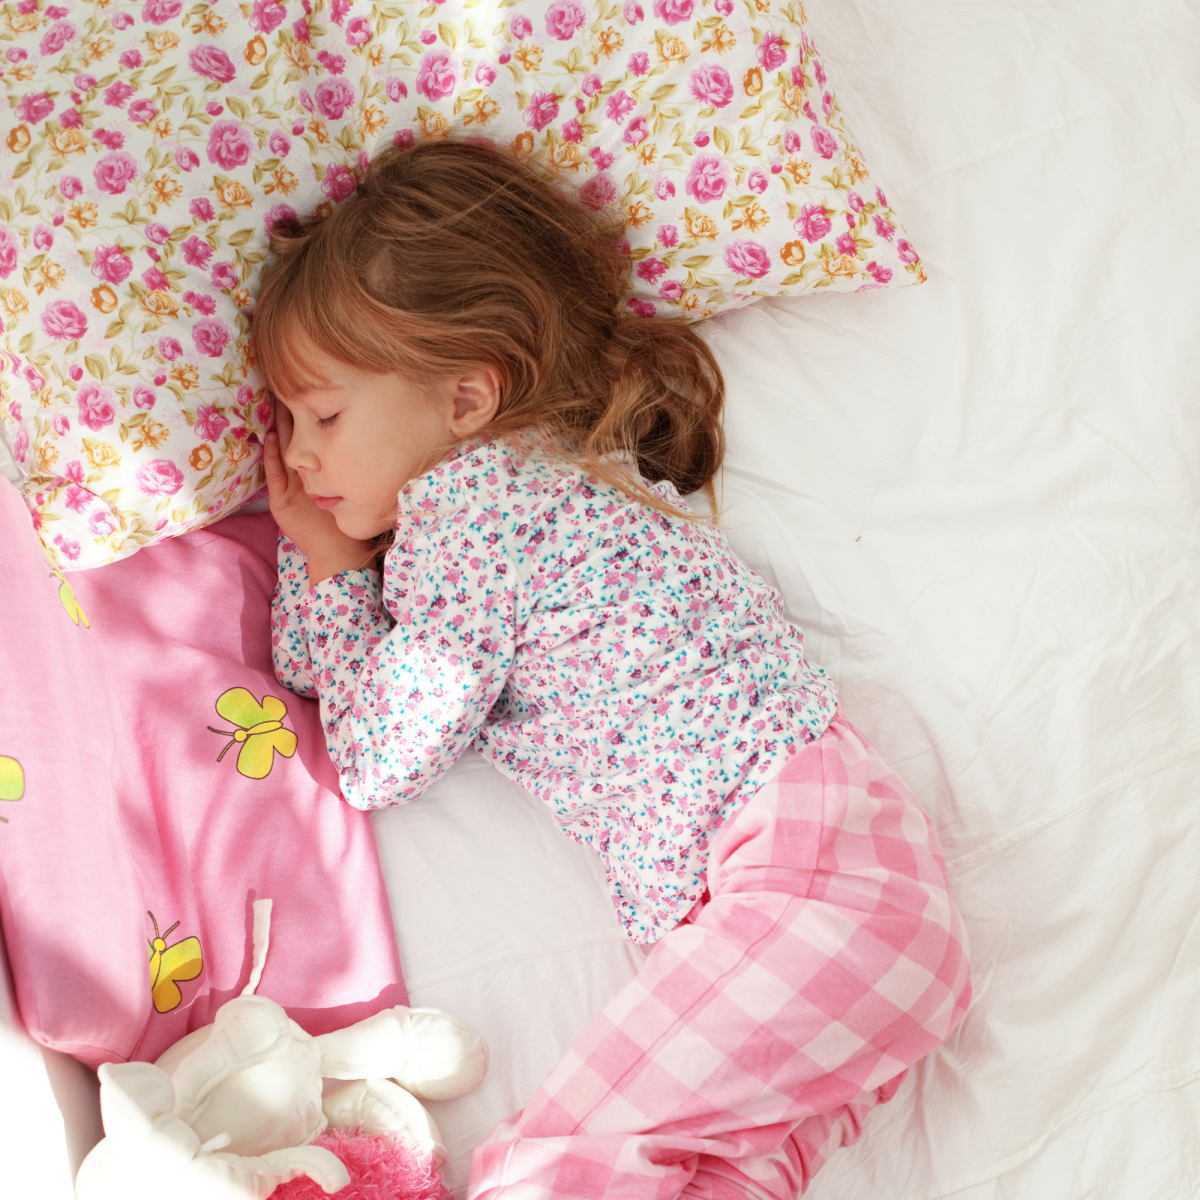 3 effective sleep training tips for kids, how to teach your child to sleep, how to get your children to sleep, sleep training, more sleep for kids, REMI sleep training, REMI, sleep tips, parenting tips, how to get your kids to sleep